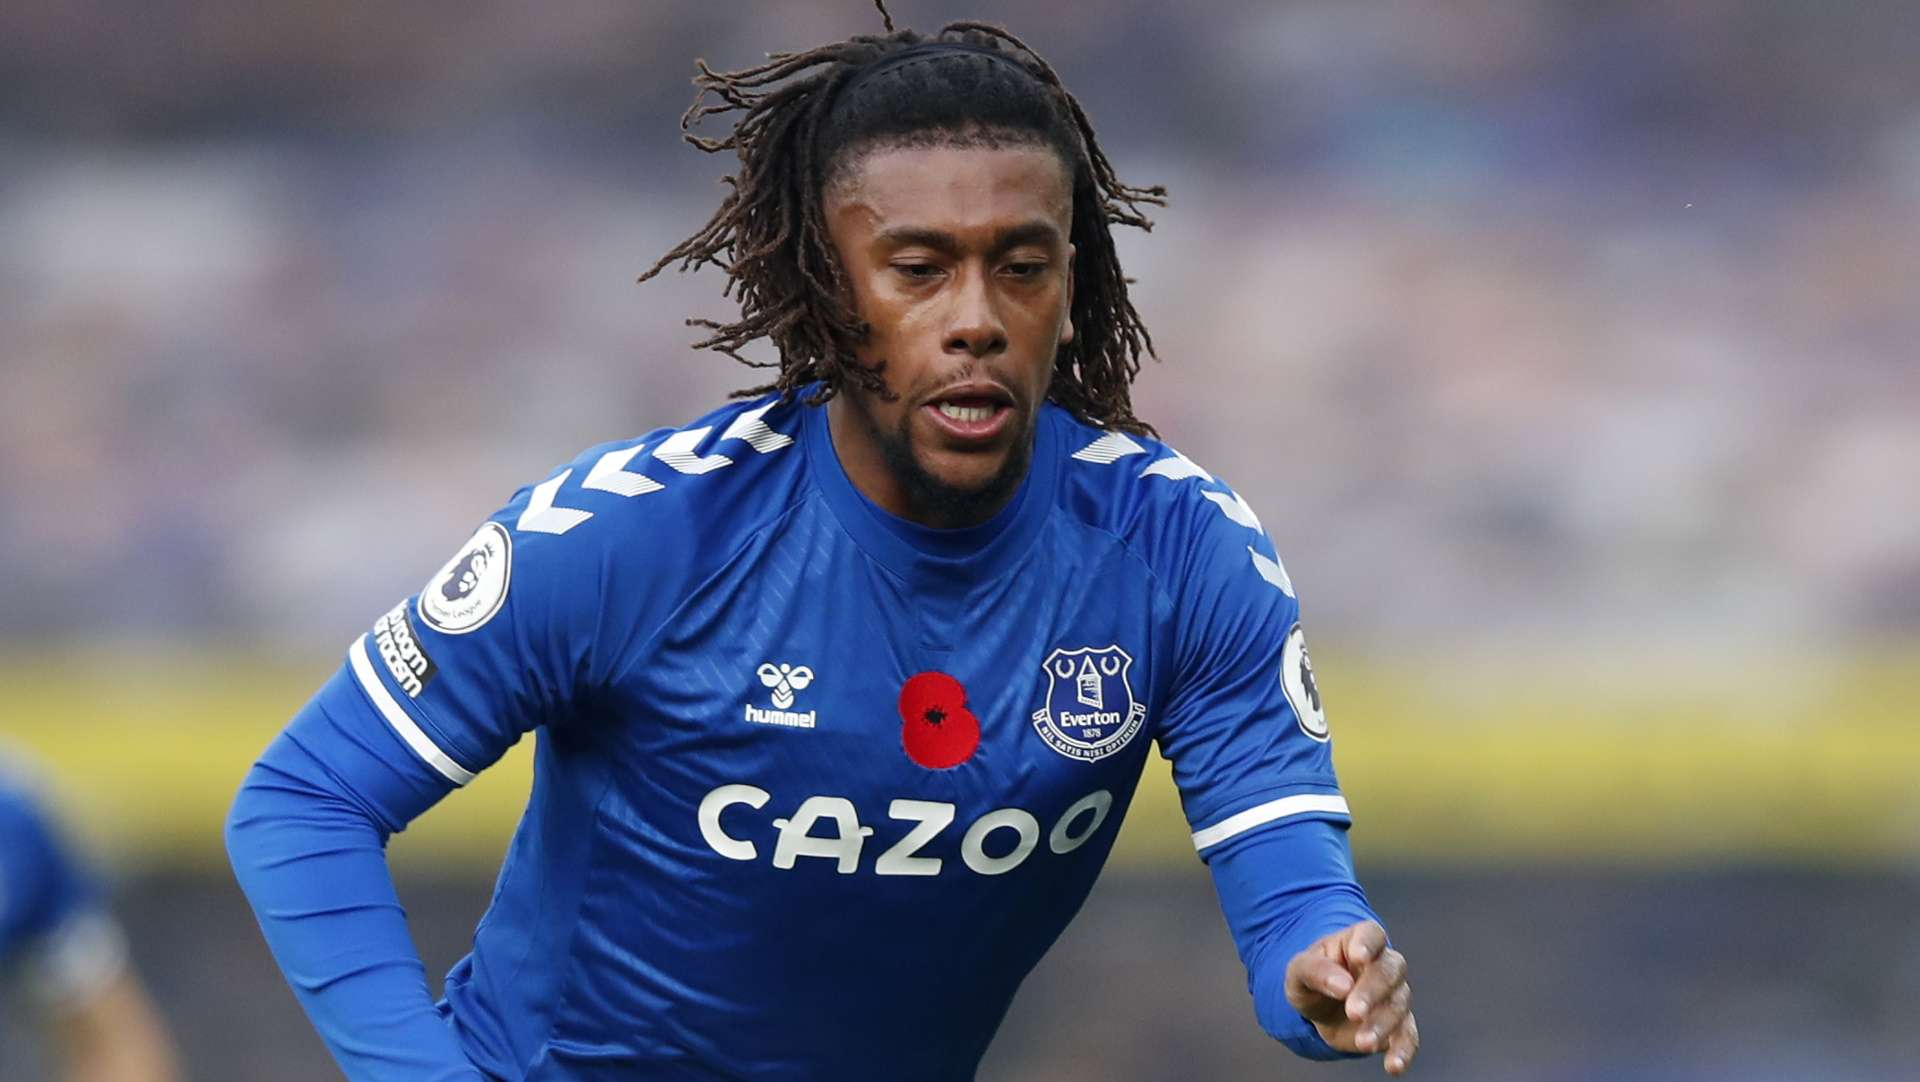 It'll Be Great To See Iwobi Play Against Arsenal – Aubameyang